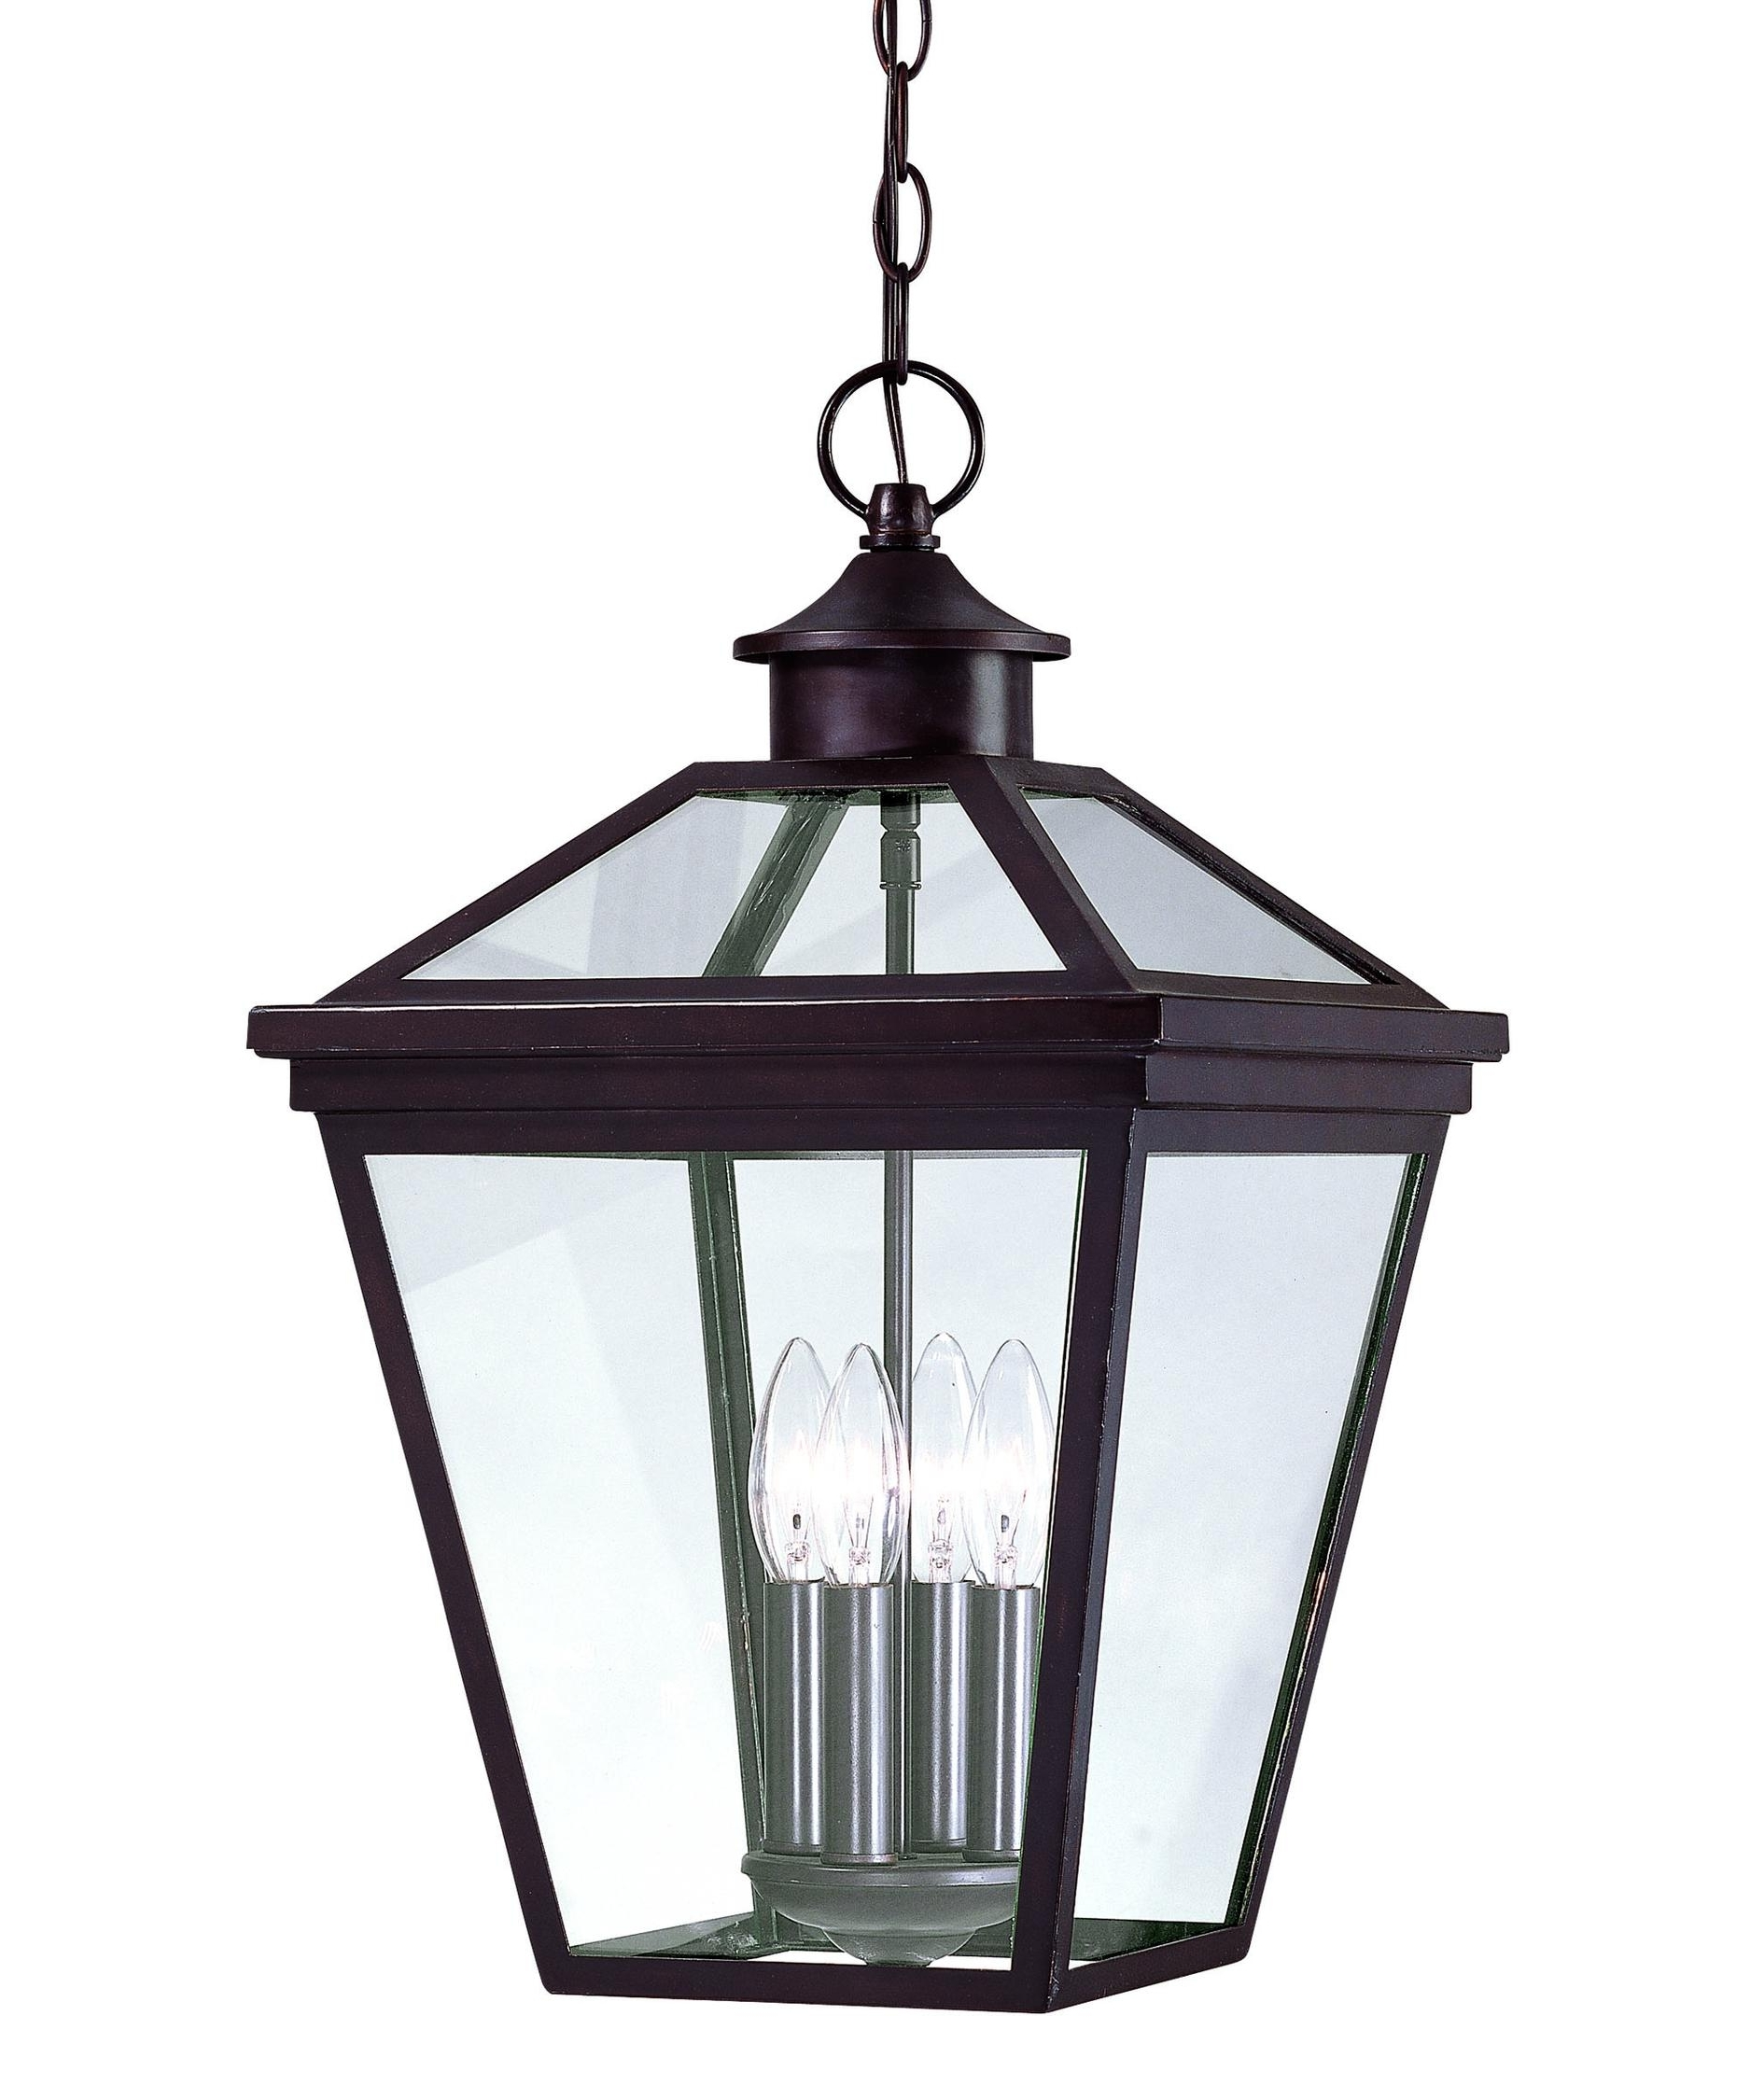 Savoy House 5 145 13 Ellijay 12 Inch Wide 4 Light Outdoor Hanging With Regard To Most Up To Date Outdoor Glass Lanterns (View 16 of 20)